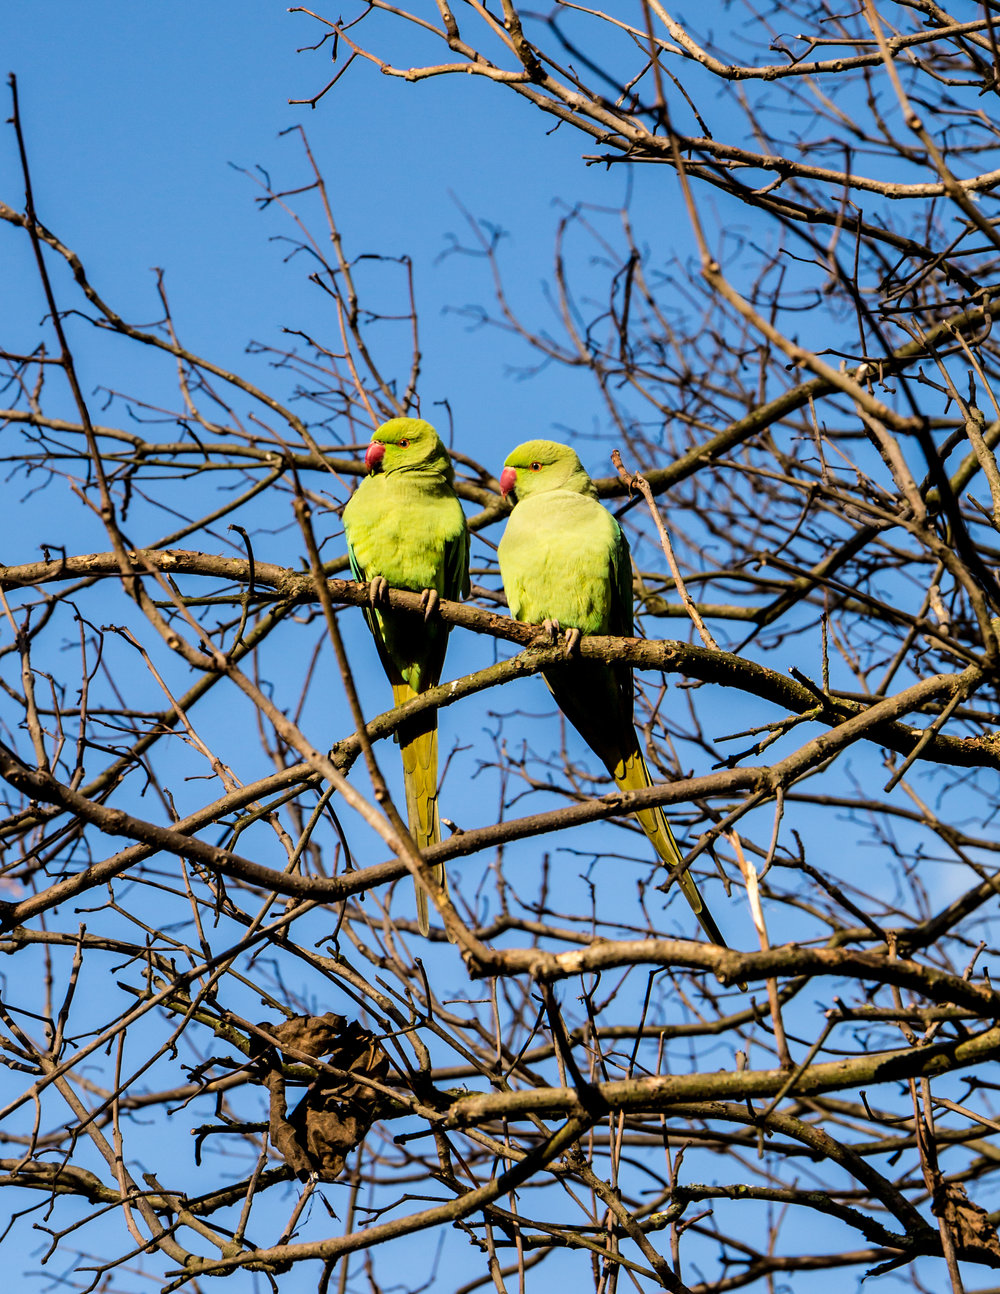 chris knight - hyde park - london3 - parakeet.jpg